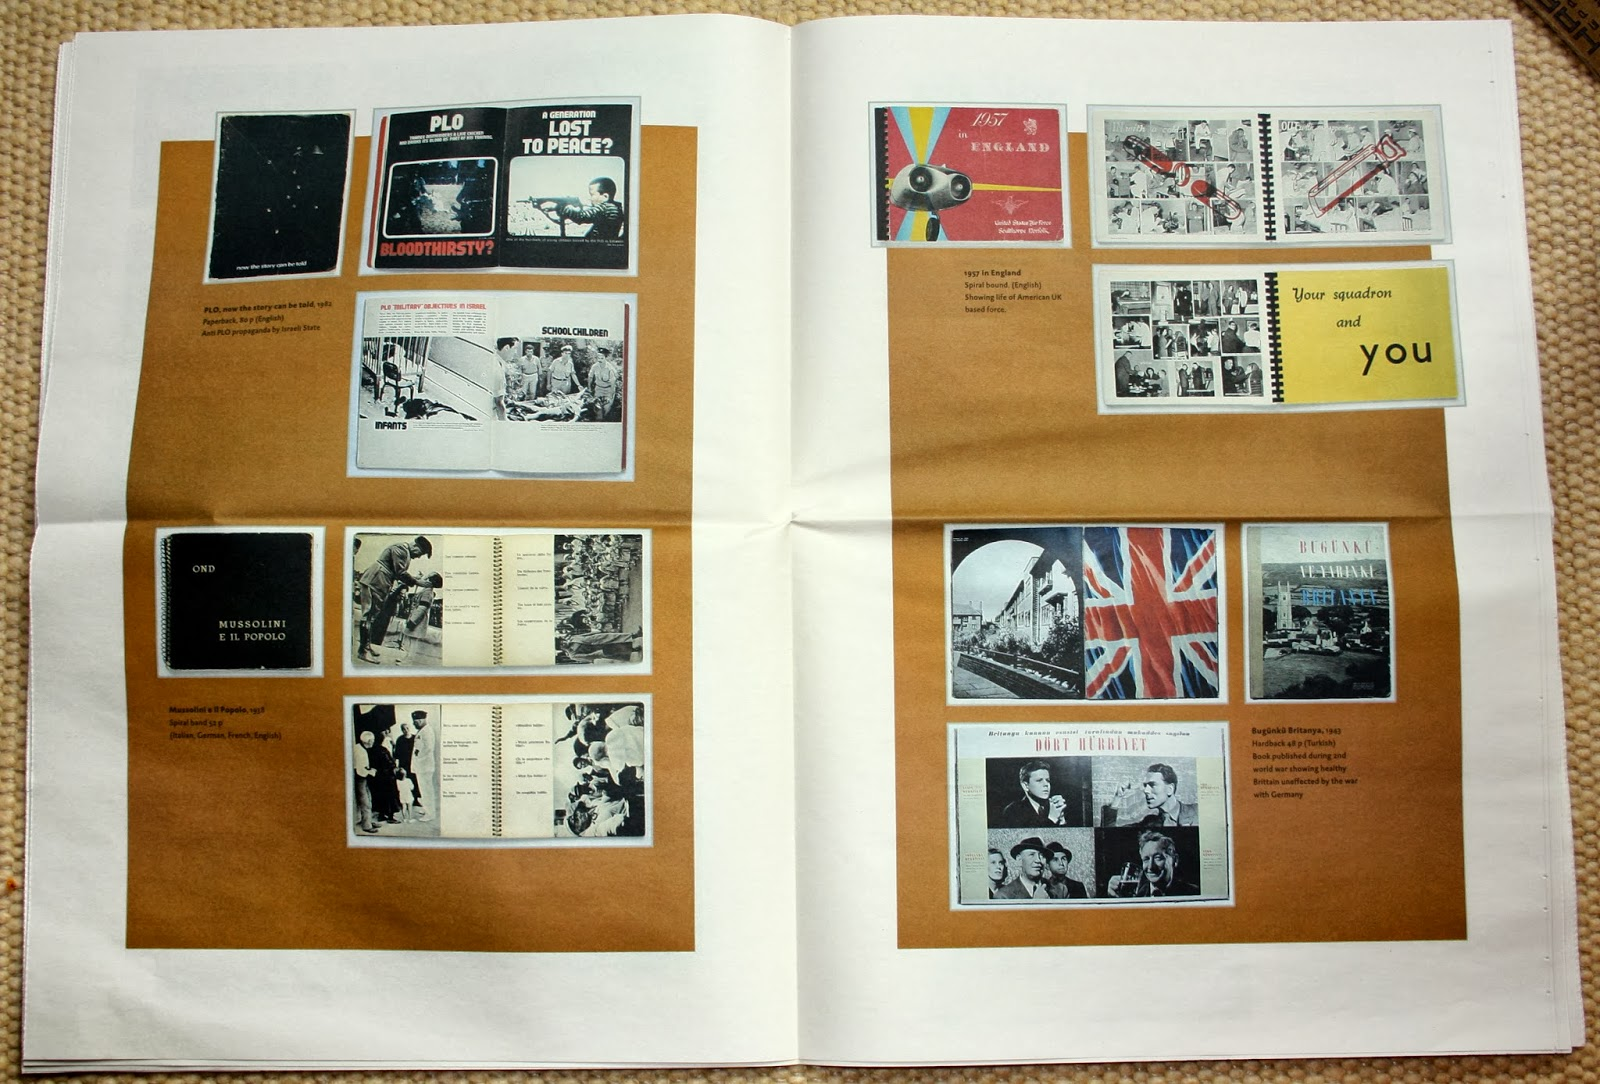 bint photobooks on internet some rare and superb propaganda now the story can be told the plo